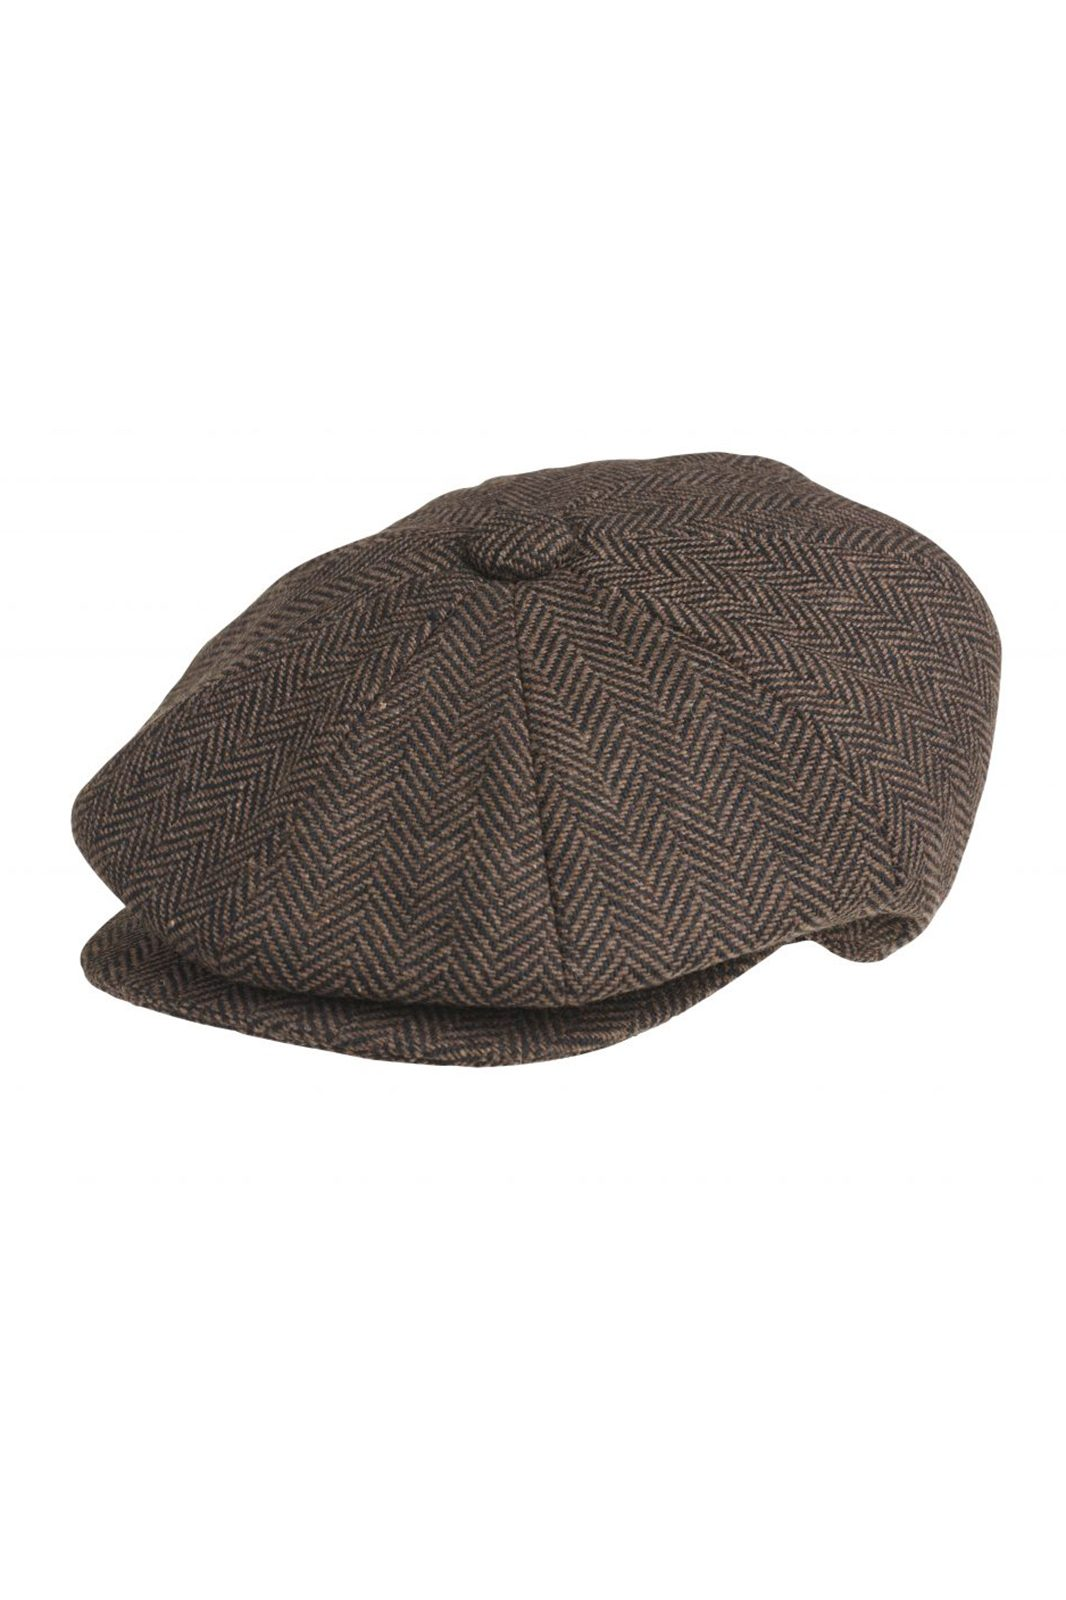 Newsboy Cap Herringbone Brown